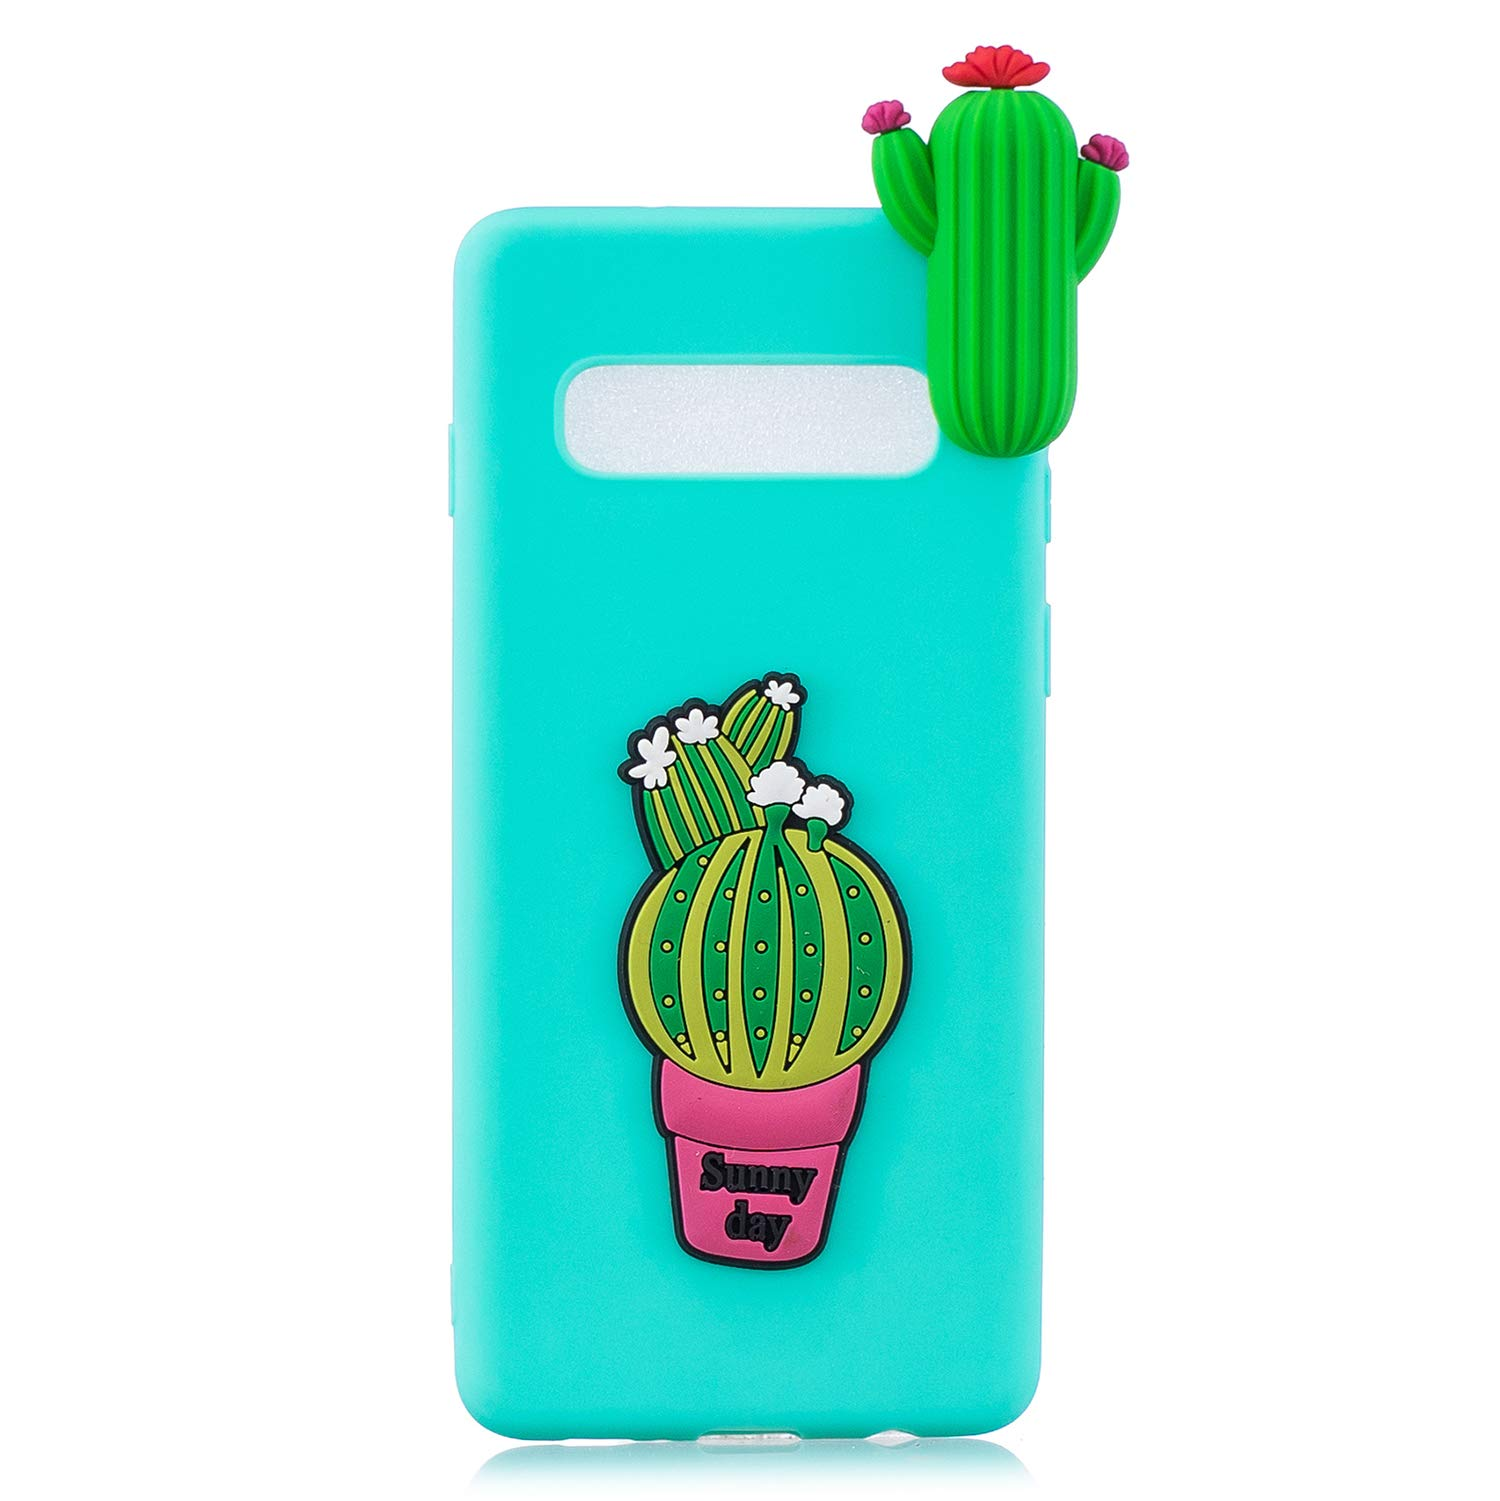 TPU Case for Samsung Galaxy S10,Moiky Funny 3D Cactus Design Ultra Thin Soft Silicone Resistant Back Cover Phone Case Unique Style Protect Case by MOIKY (Image #3)